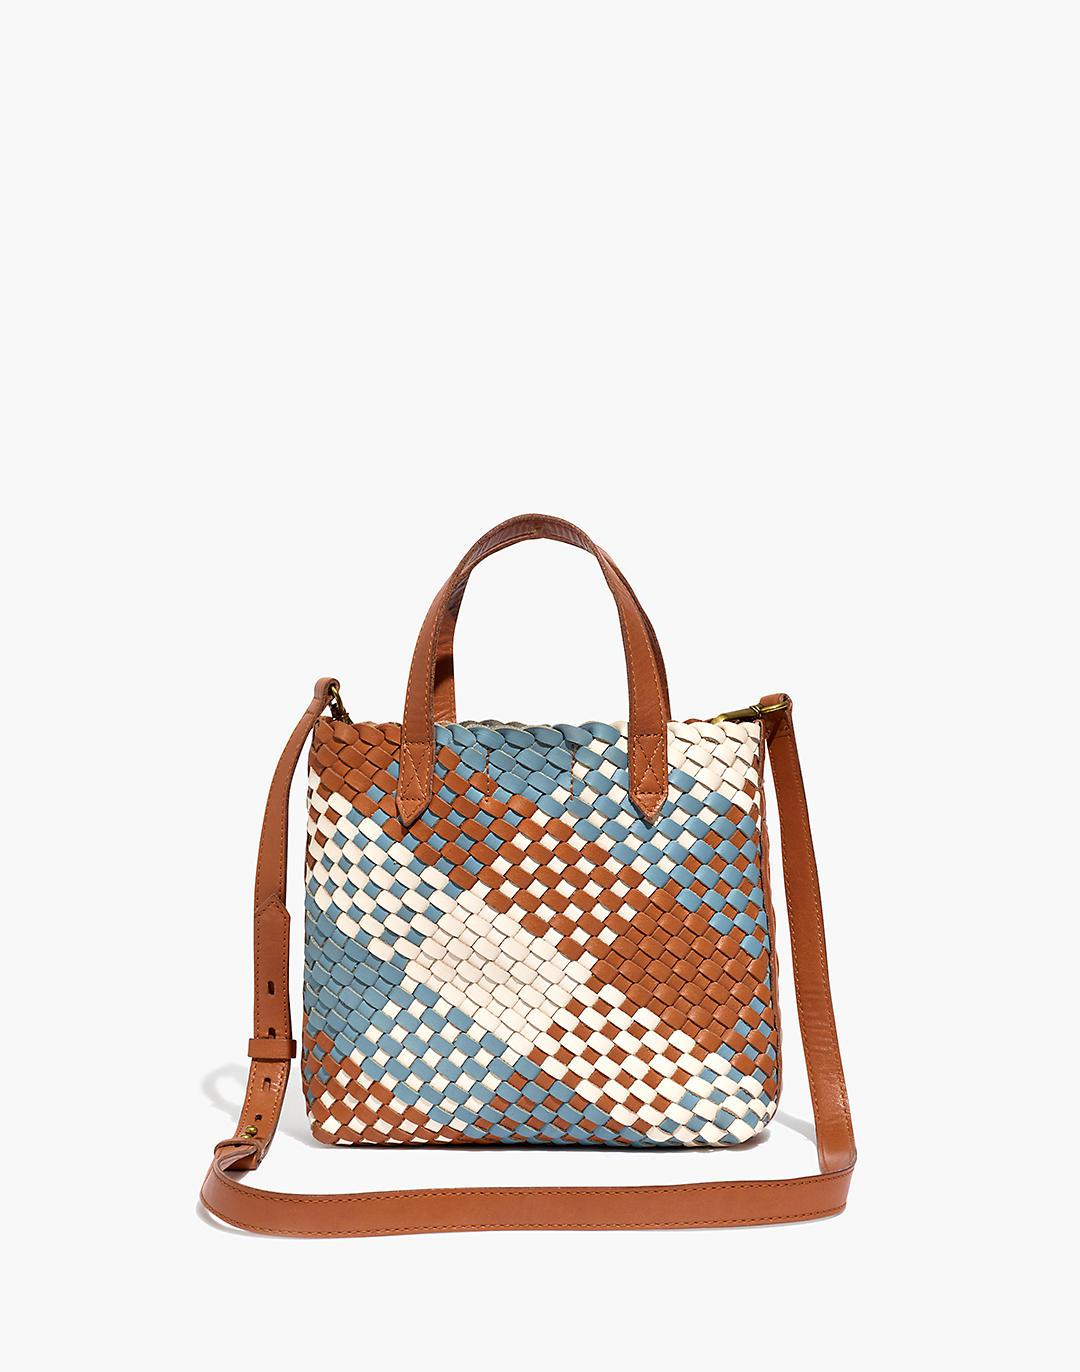 The Small Transport Crossbody: Multicolored Woven Leather Edition